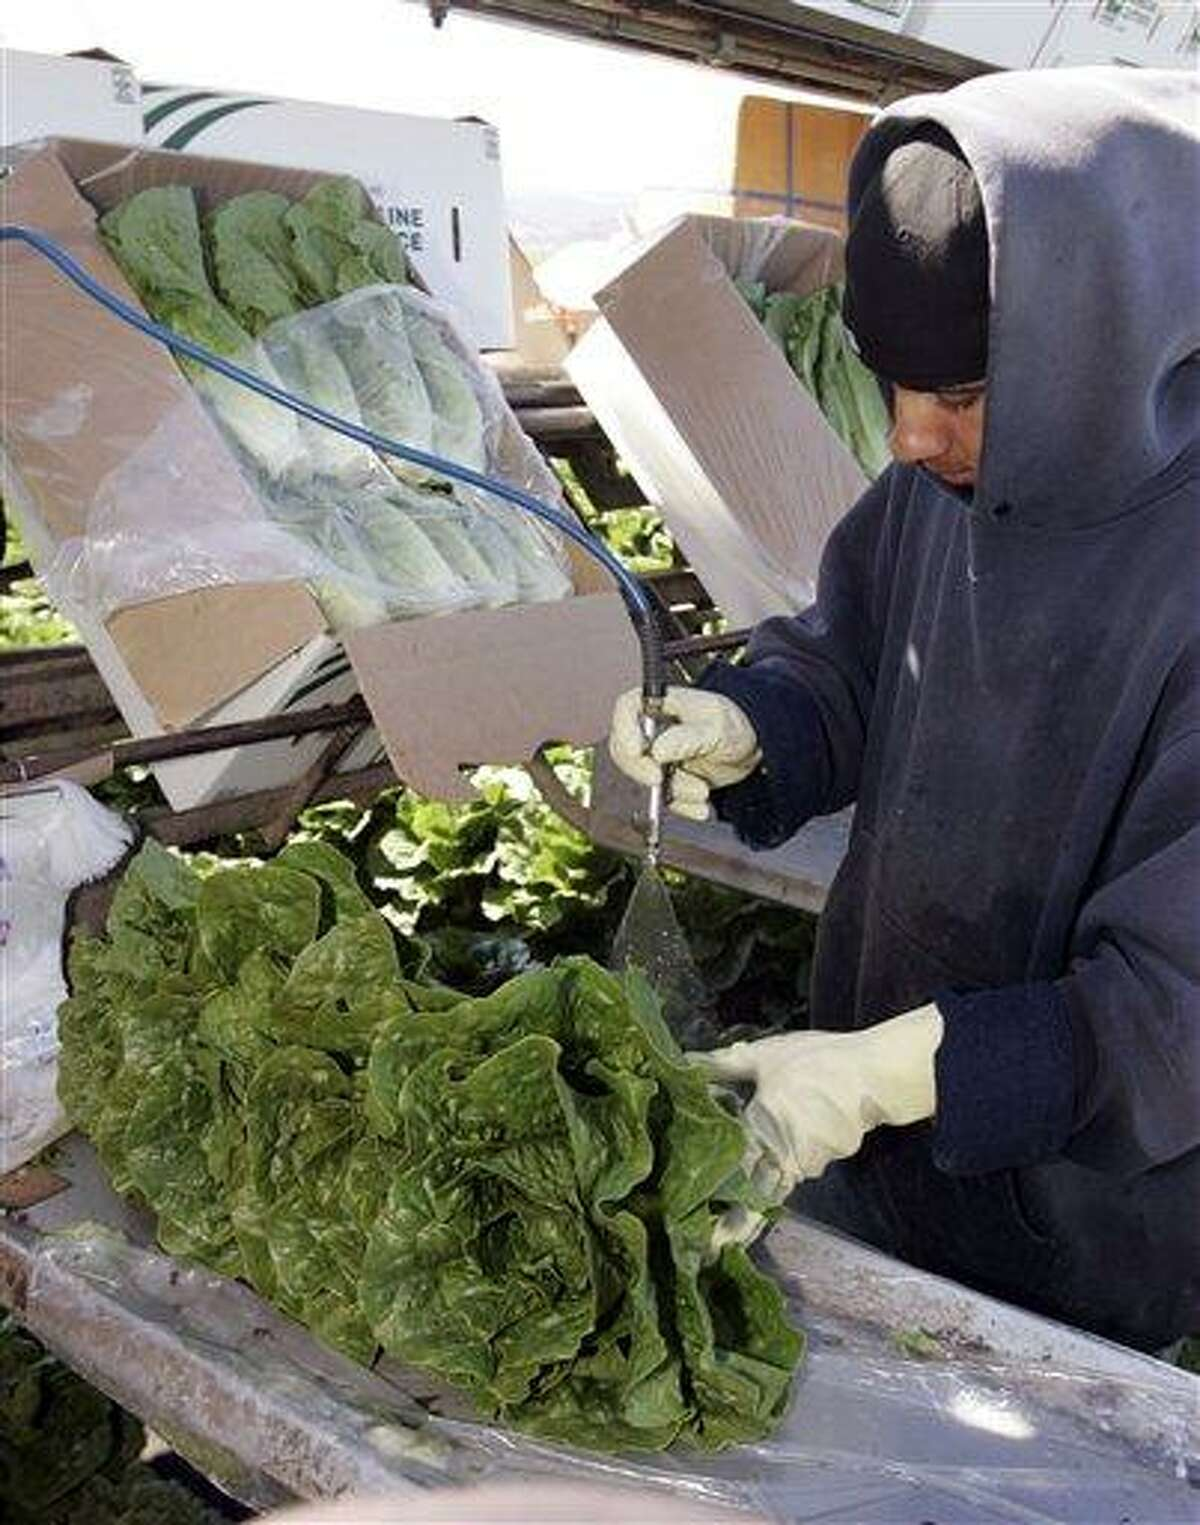 FILE - In this Thursday, Aug. 16, 2007 file photo, a lettuce worker washes romaine lettuce in Salinas, Calif. Leafy green vegetables were the leading source of food poisoning over an 11-year period, federal health officials say, Tuesday, Jan. 29, 2013. However, the most food-related deaths were from contaminated chicken and other poultry. (AP Photo/Paul Sakuma, File)